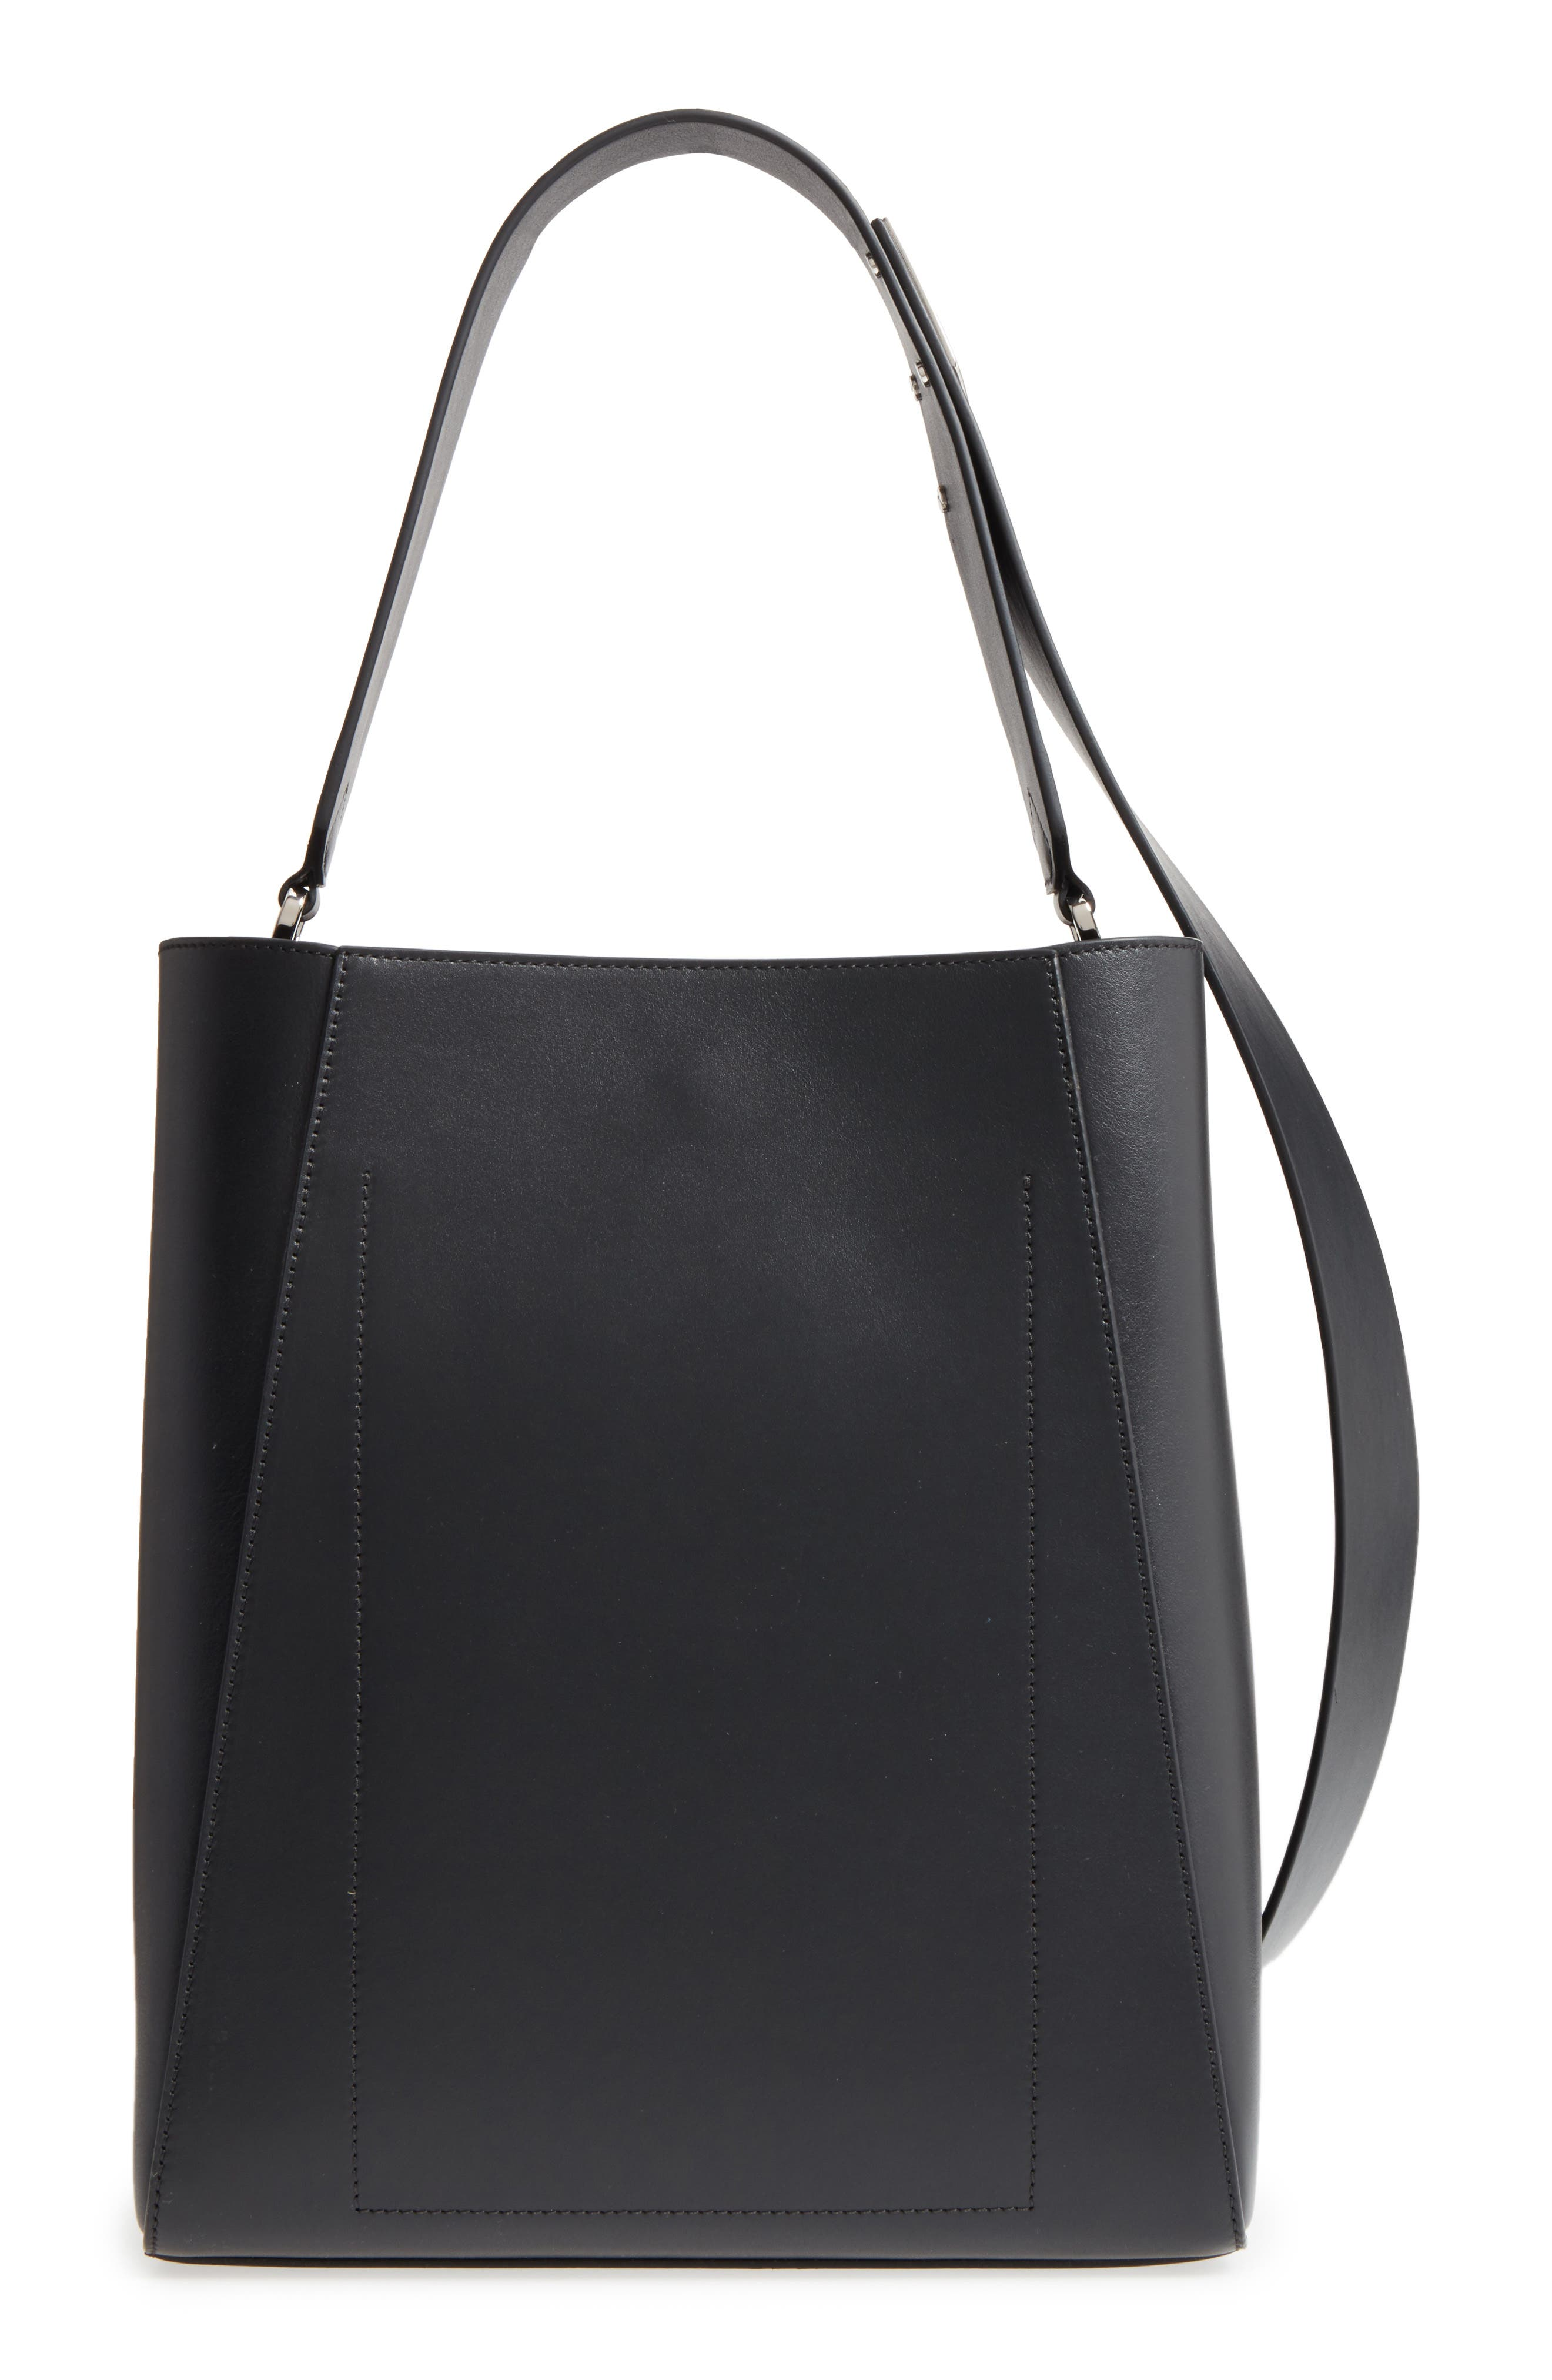 Medium Calfskin Leather Bucket Bag with Removable Pouch,                             Alternate thumbnail 3, color,                             001